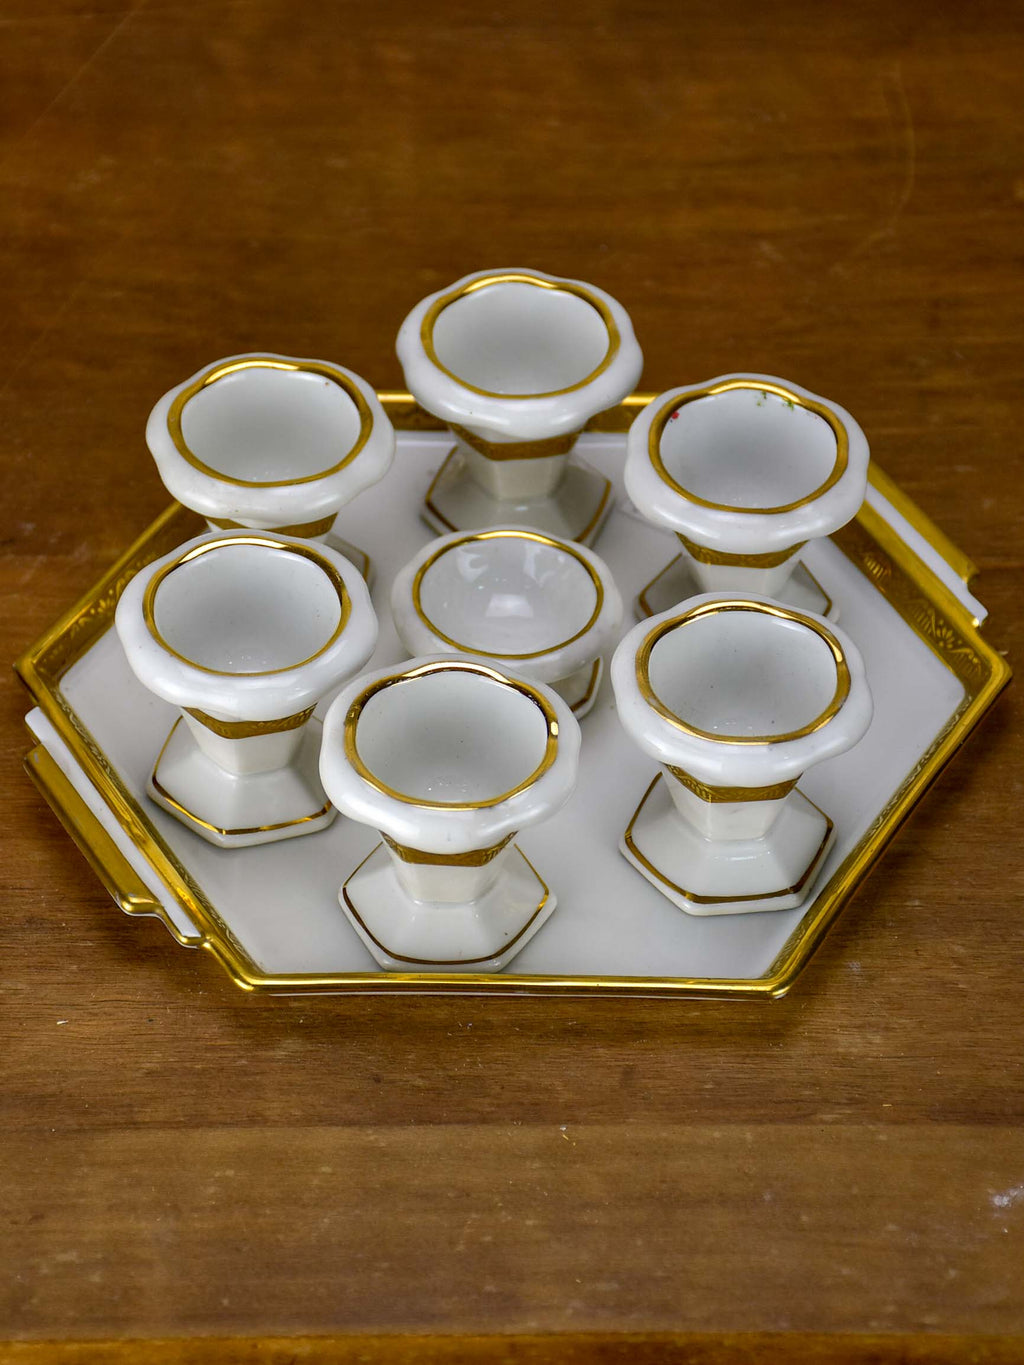 Antique French Limoges egg cups on a platter